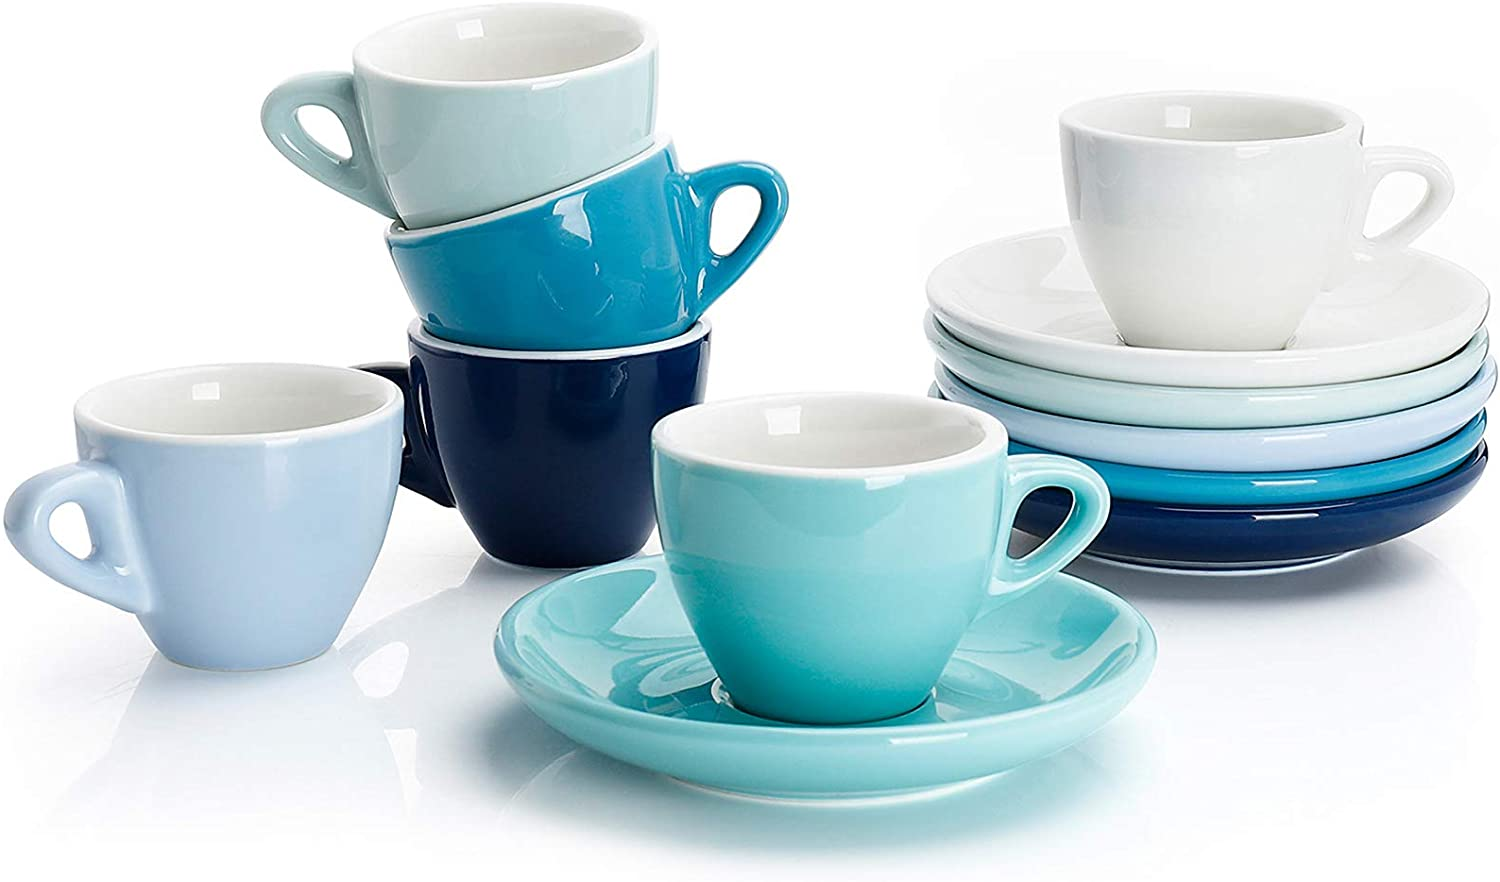 Amazon.com | Sweese 401.003 Porcelain Espresso Cups with Saucers - 2 Ounce - Set of 6, Cool Assorted Colors: Dining & Entertaining